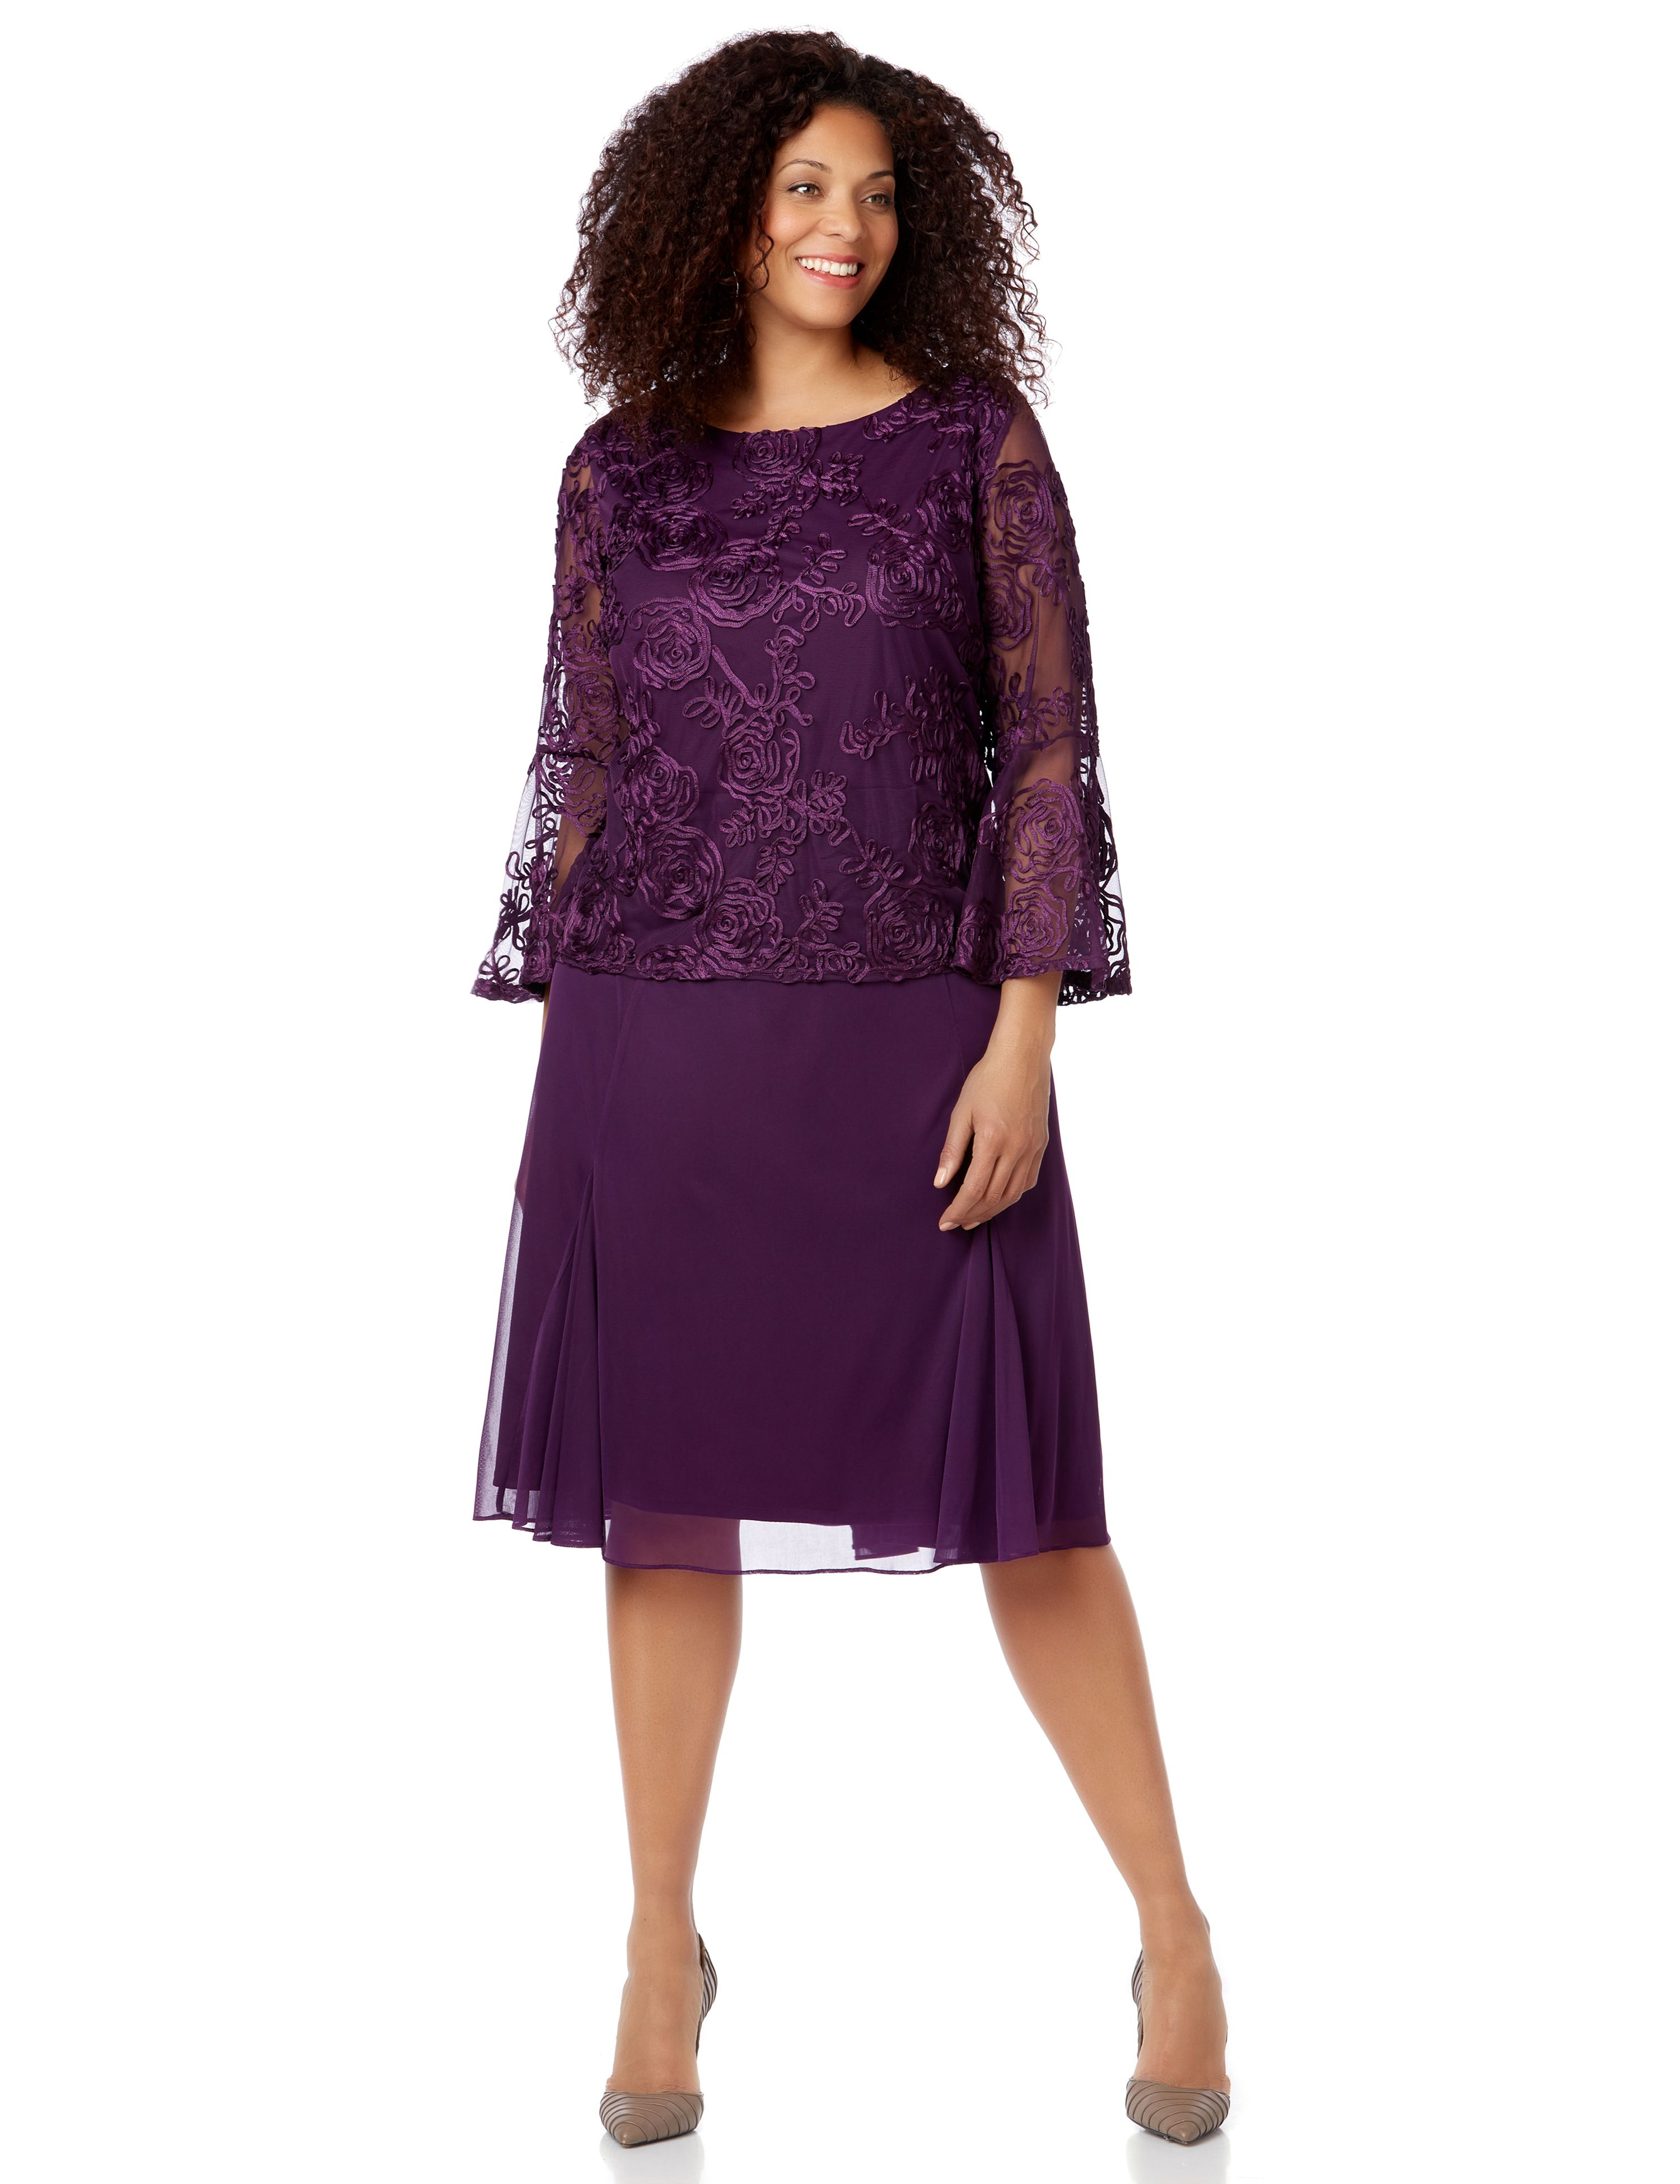 Plum Promenade Dress 1090986 Dress with Overlay and Bell MP-300096172